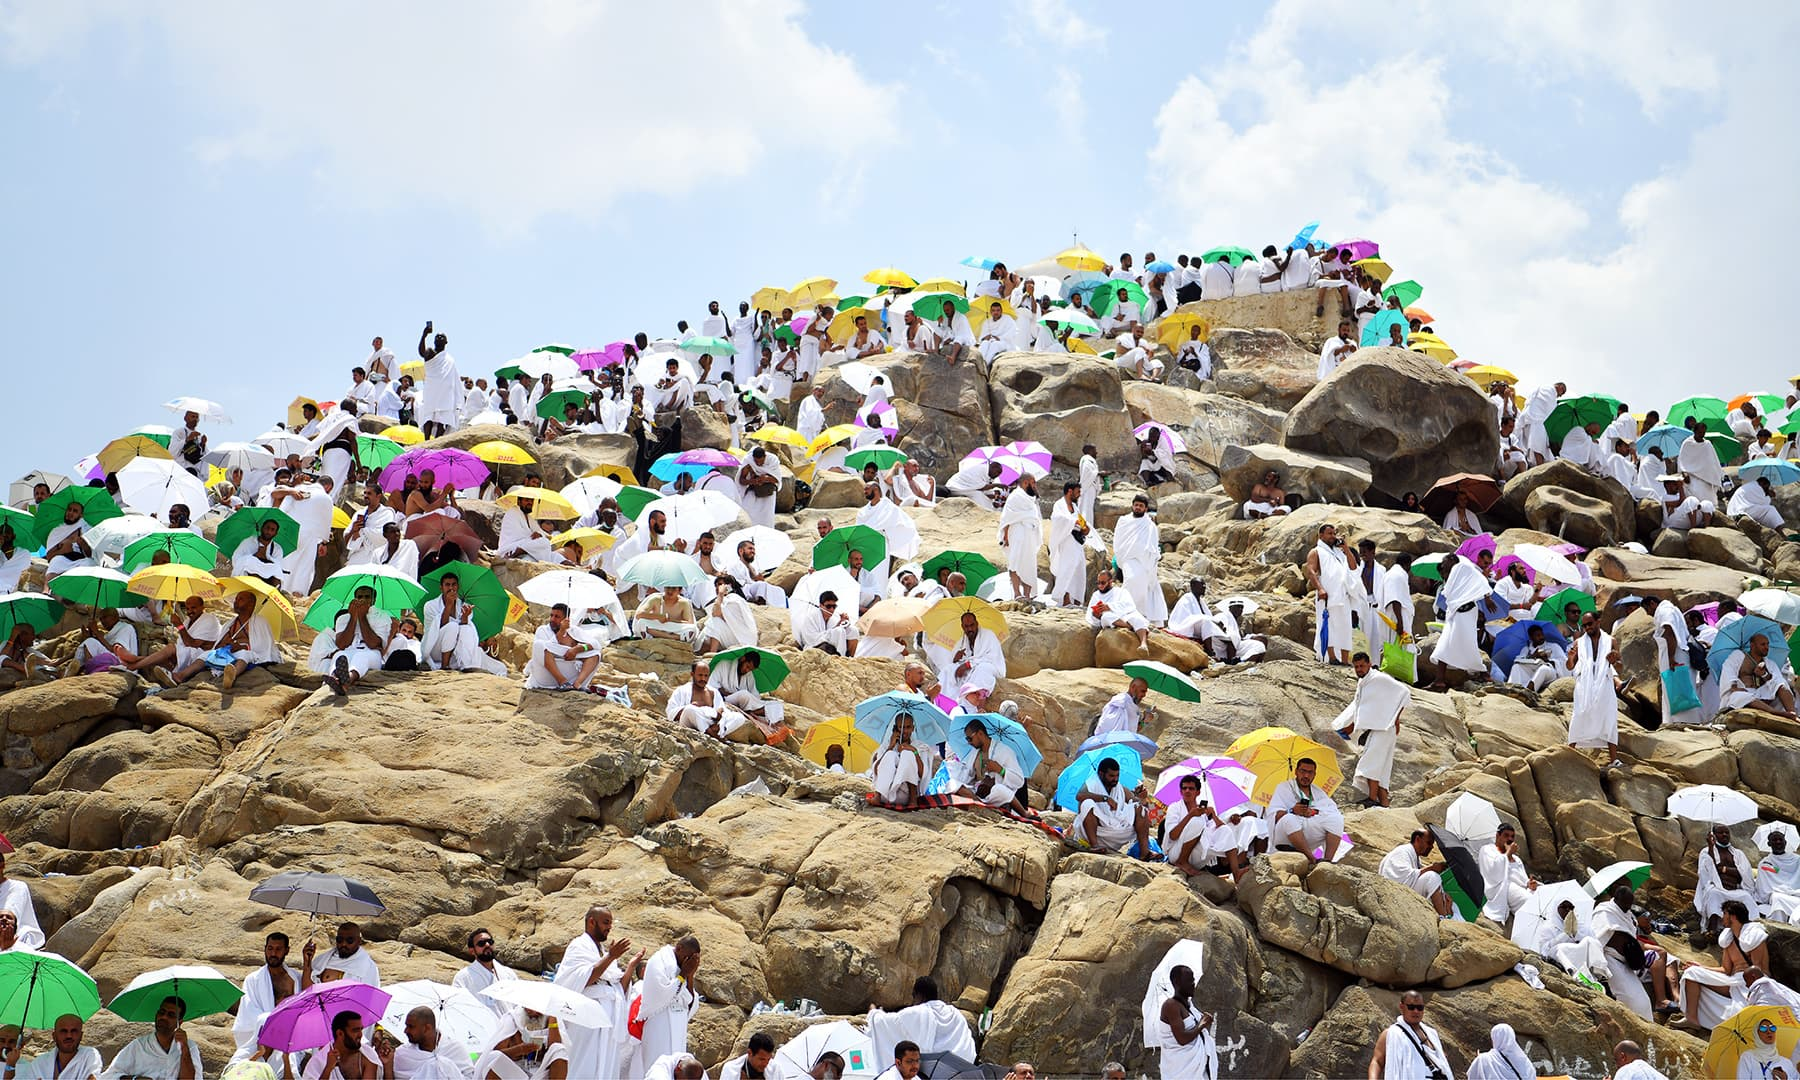 Muslim pilgrims pray on Mount of Mercy in Arafat ahead of the Eid al-Adha festival in holy city of Mecca, Saudi Arabia August 10, 2019. REUTERS/Waleed Ali